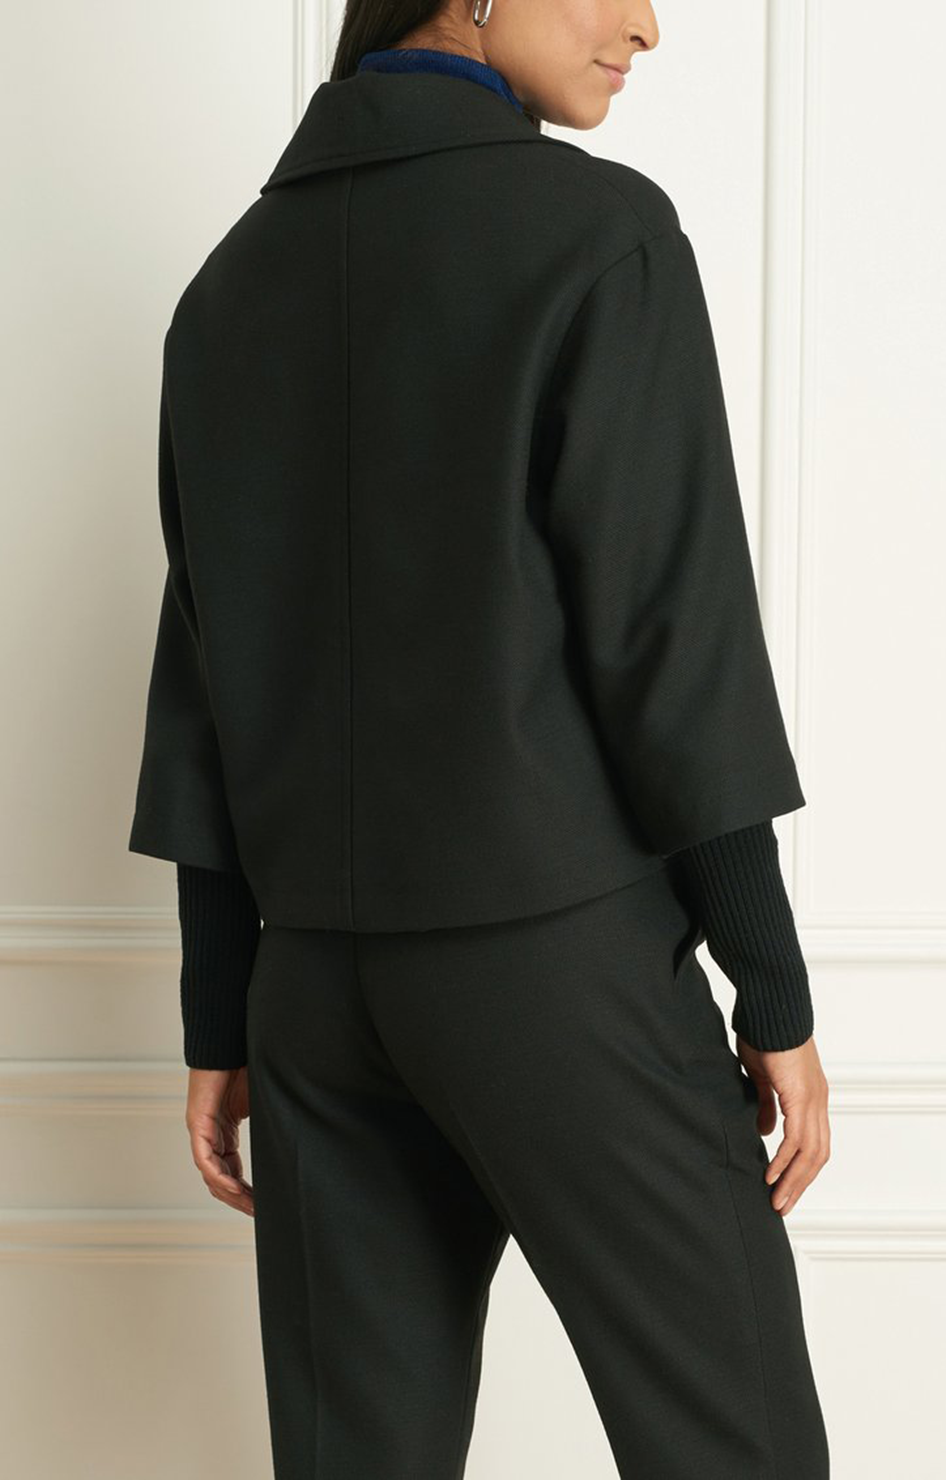 Iris Setlakwe 2 Tone Stretch Short Jacket Black